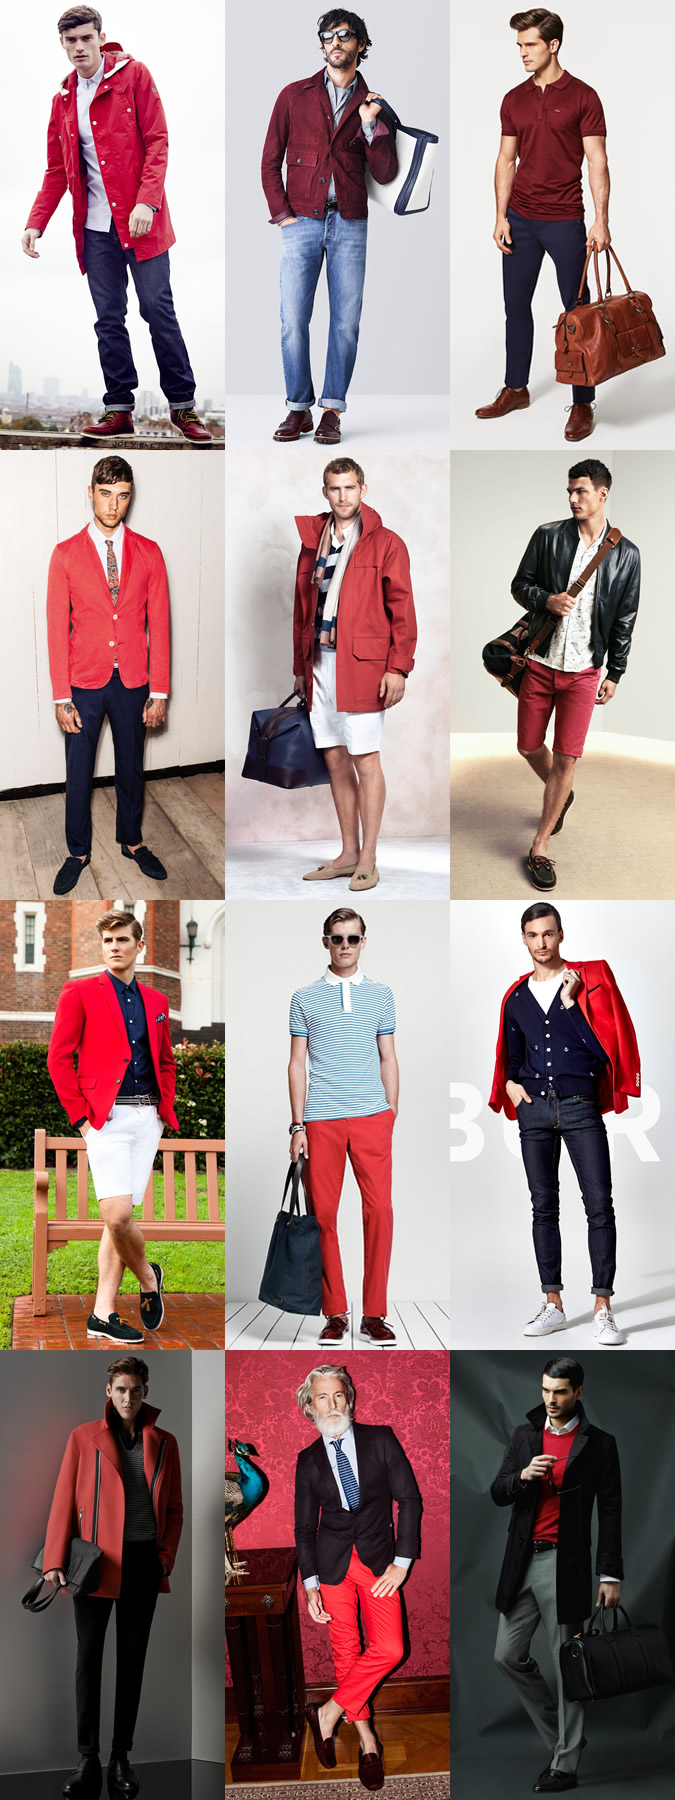 Men's Red Clothing Spring/Summer Outfit Inspiration Lookbook